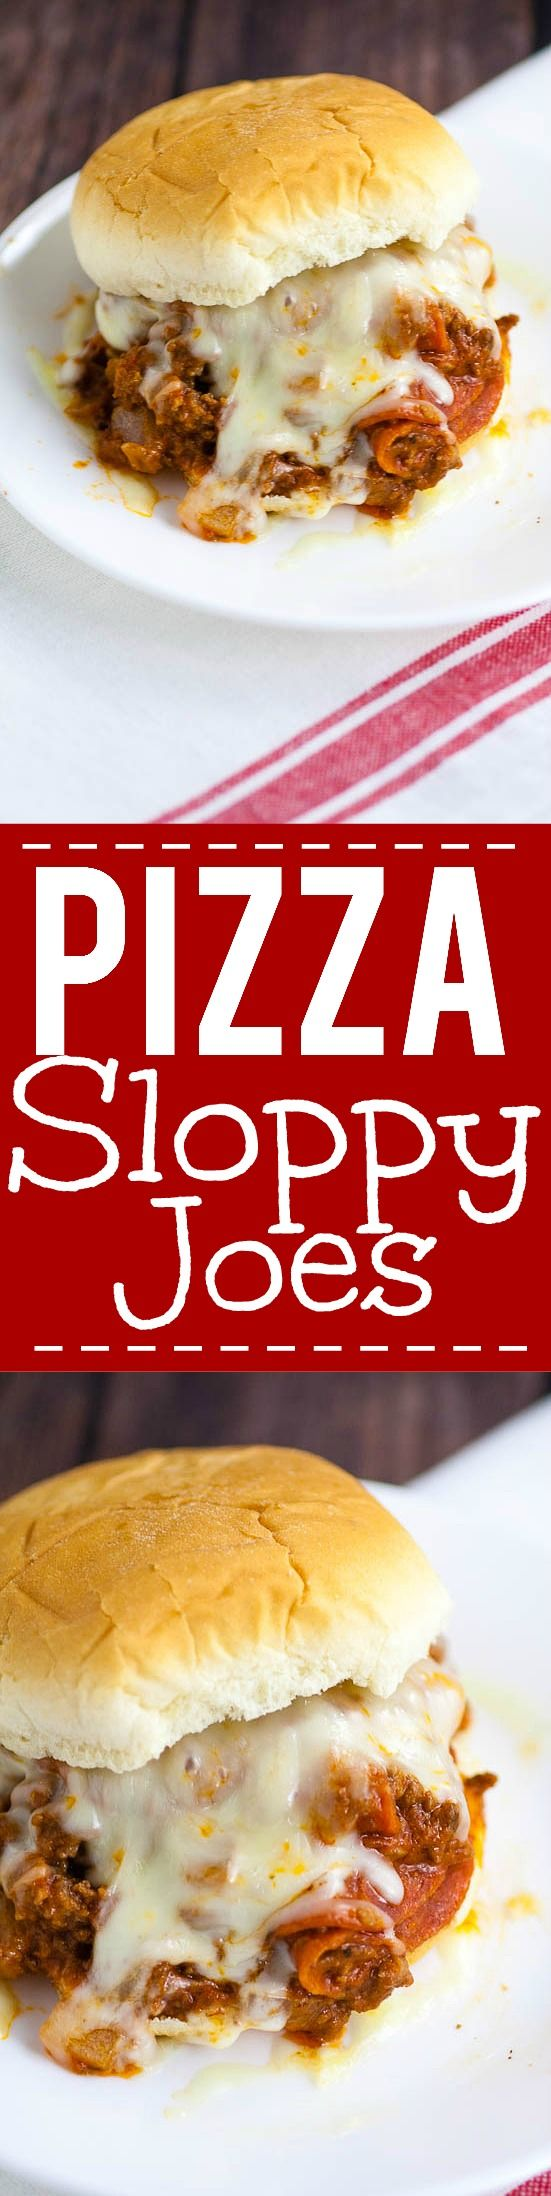 5115 best dinner recipes images on pinterest cooking food cooking pizza sloppy joes recipe quick and easy pizza sloppy joes recipe is saucy and cheesy forumfinder Images